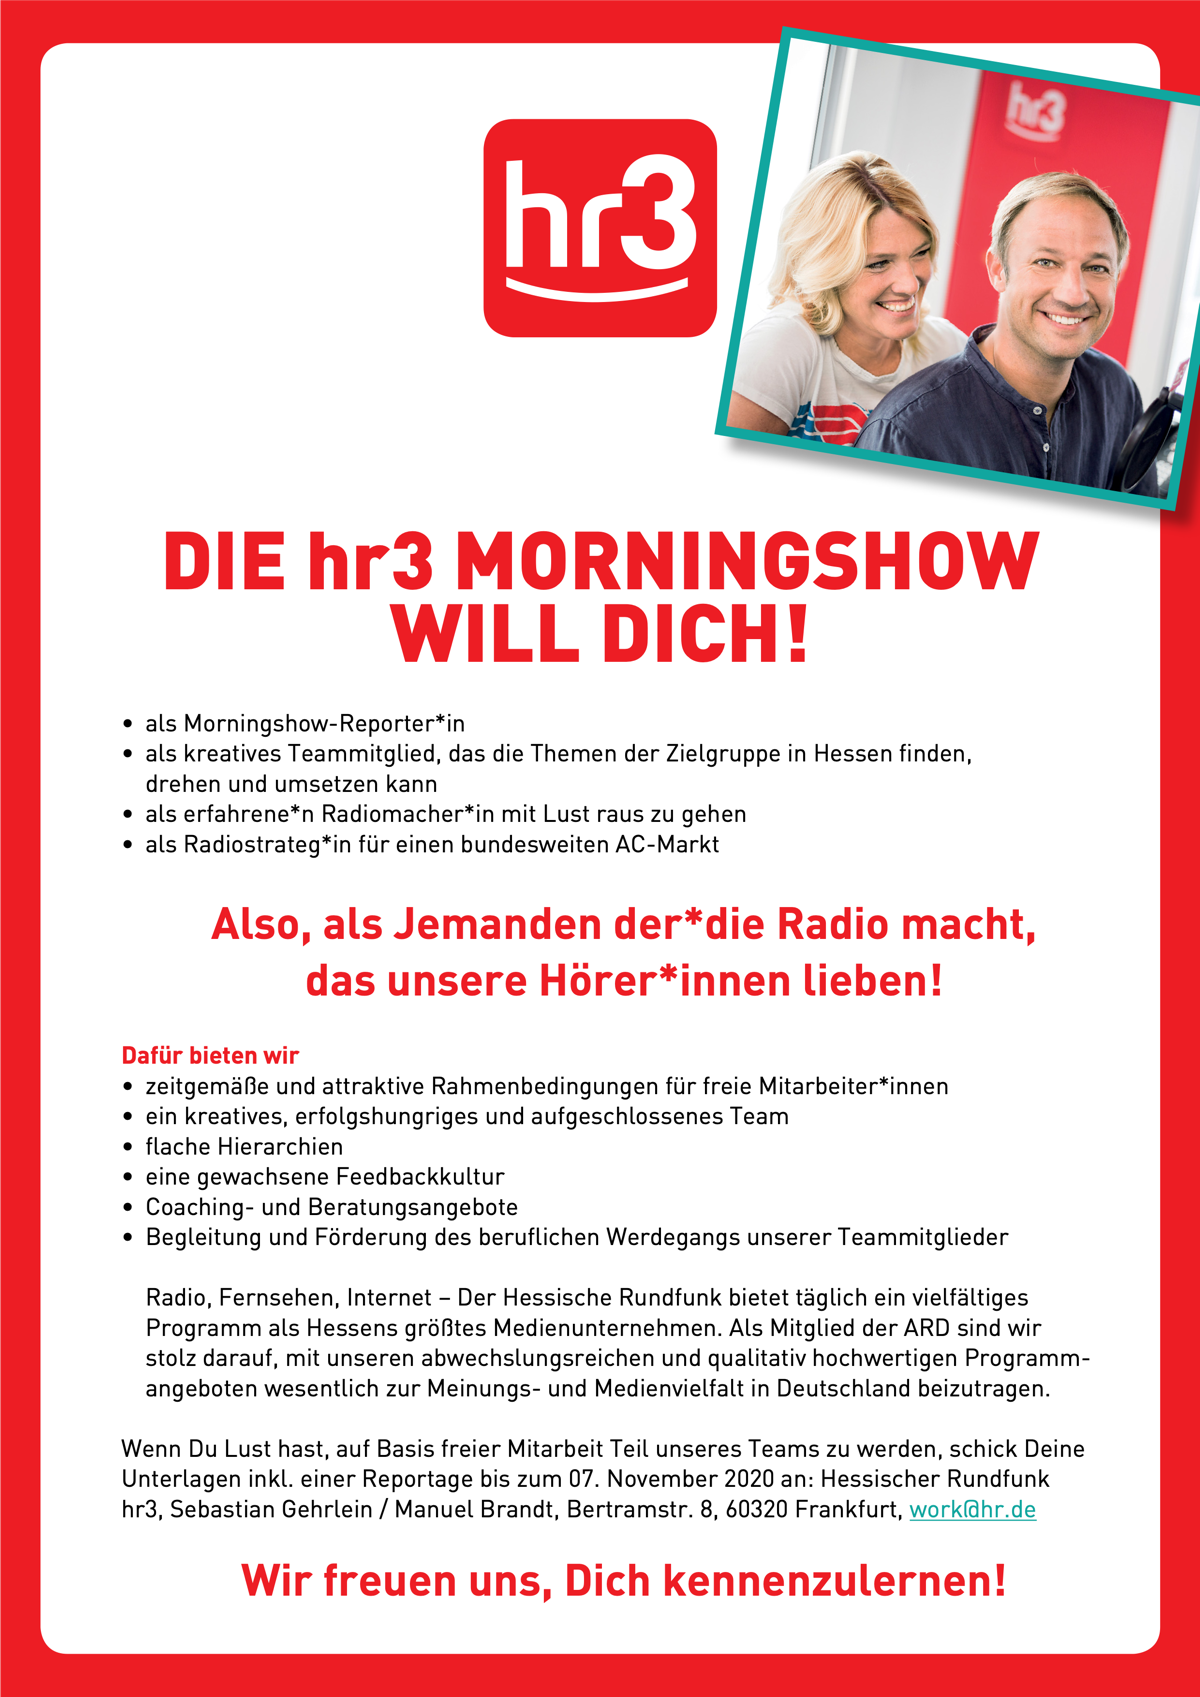 hr3 sucht Morningshow-Reporter*in